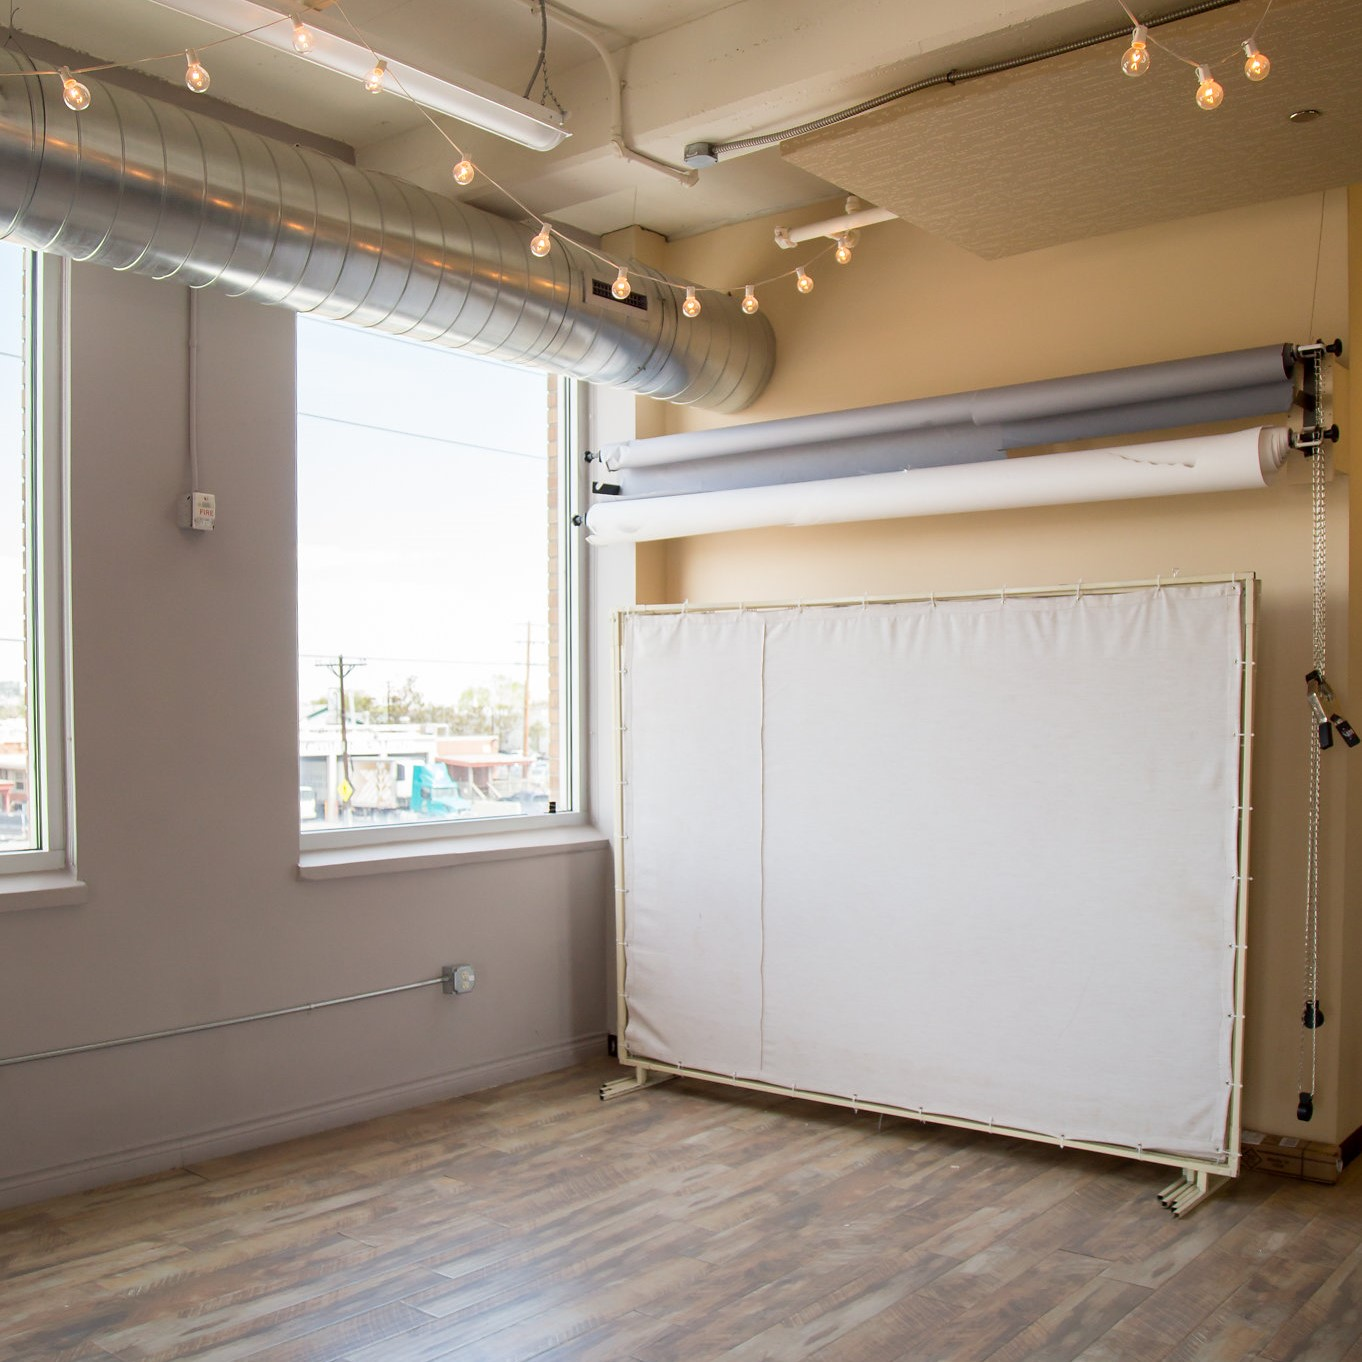 Say Hello to Our Globeville Denver Studio - With large windows surrounding our Globeville studio, natural light is never a problem! This space can accommodate any photo shoot or event or book time in our flex office space or consultation room to really wow your clients.